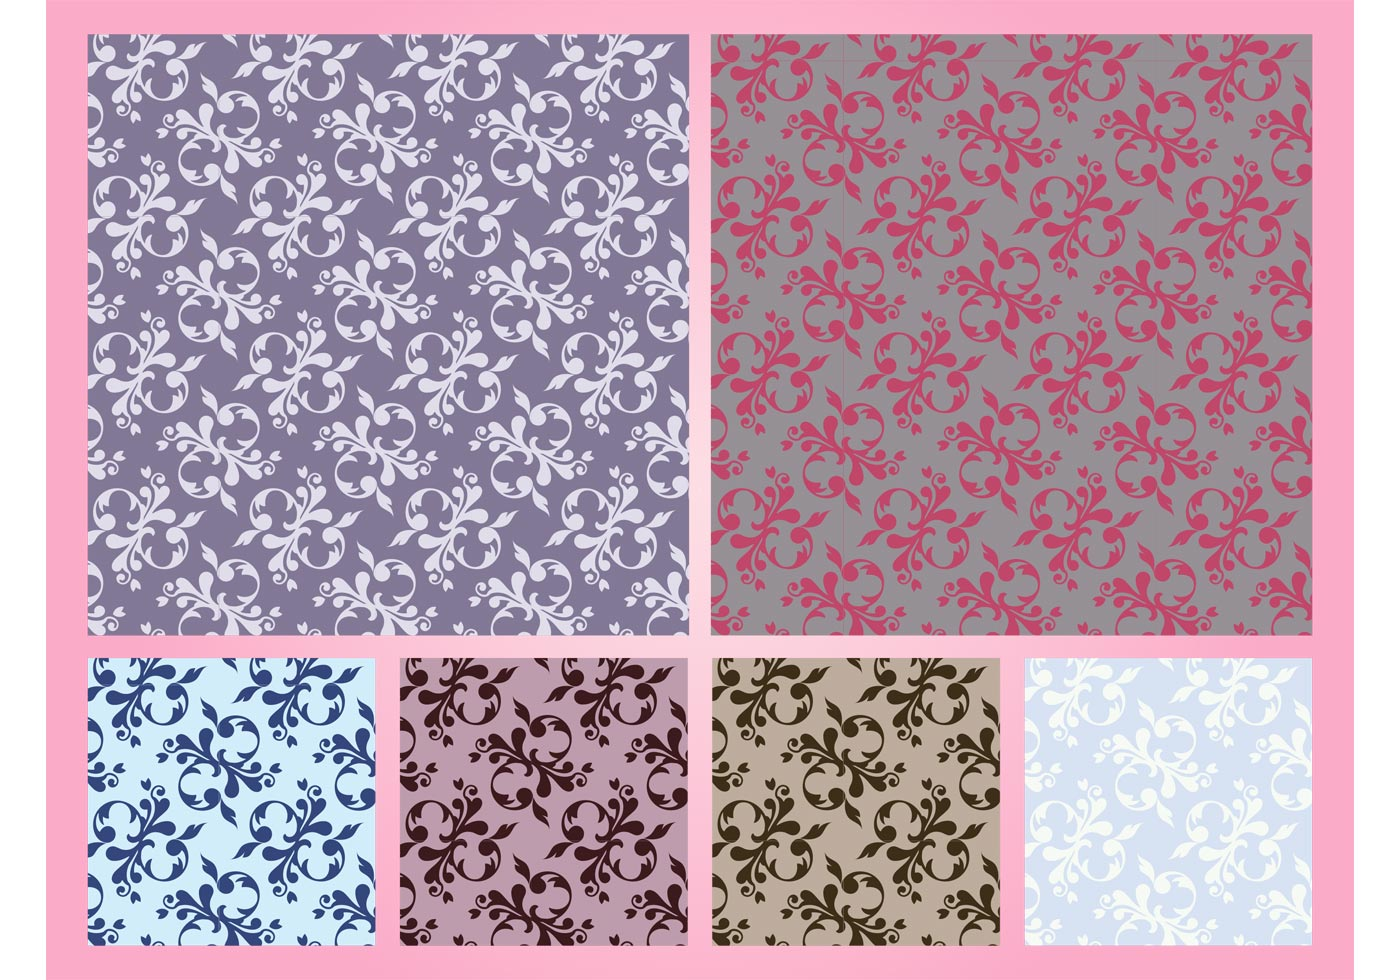 Floral patterns vector graphics download free art